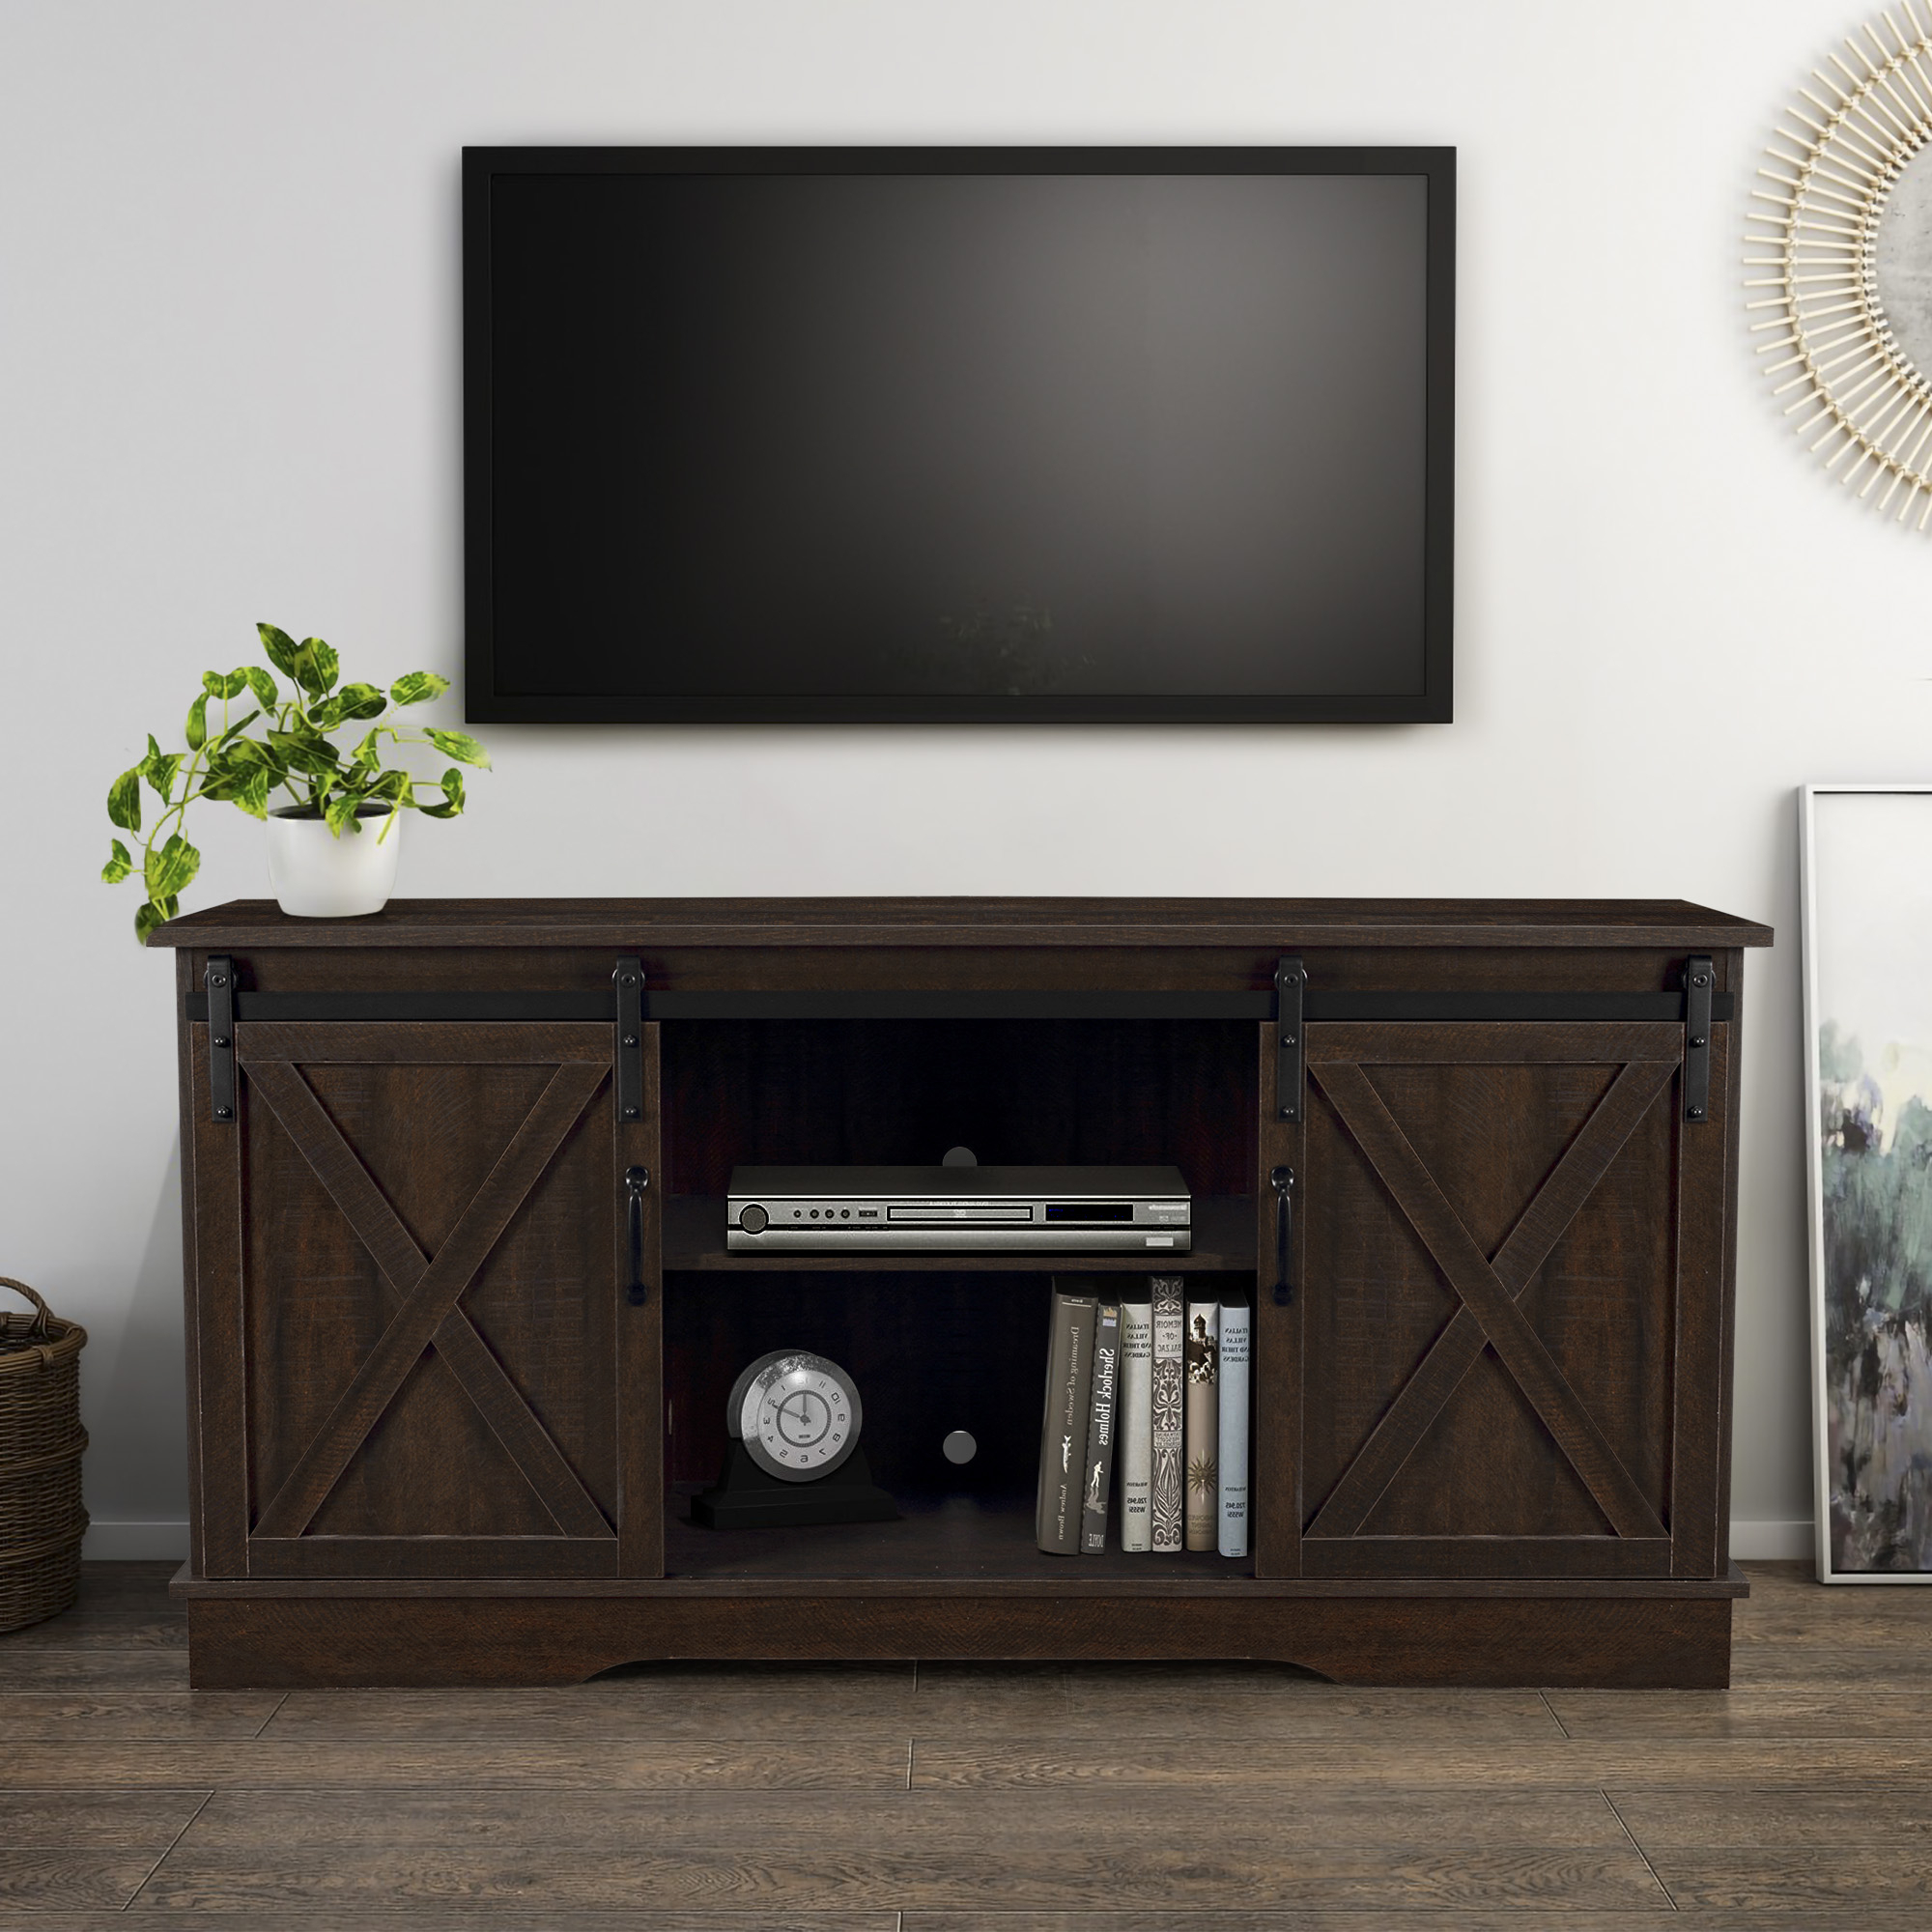 Belleze Modern Farmhouse Style 58 Inch Tv Stand With For Barn Door Wood Tv Stands (View 5 of 20)